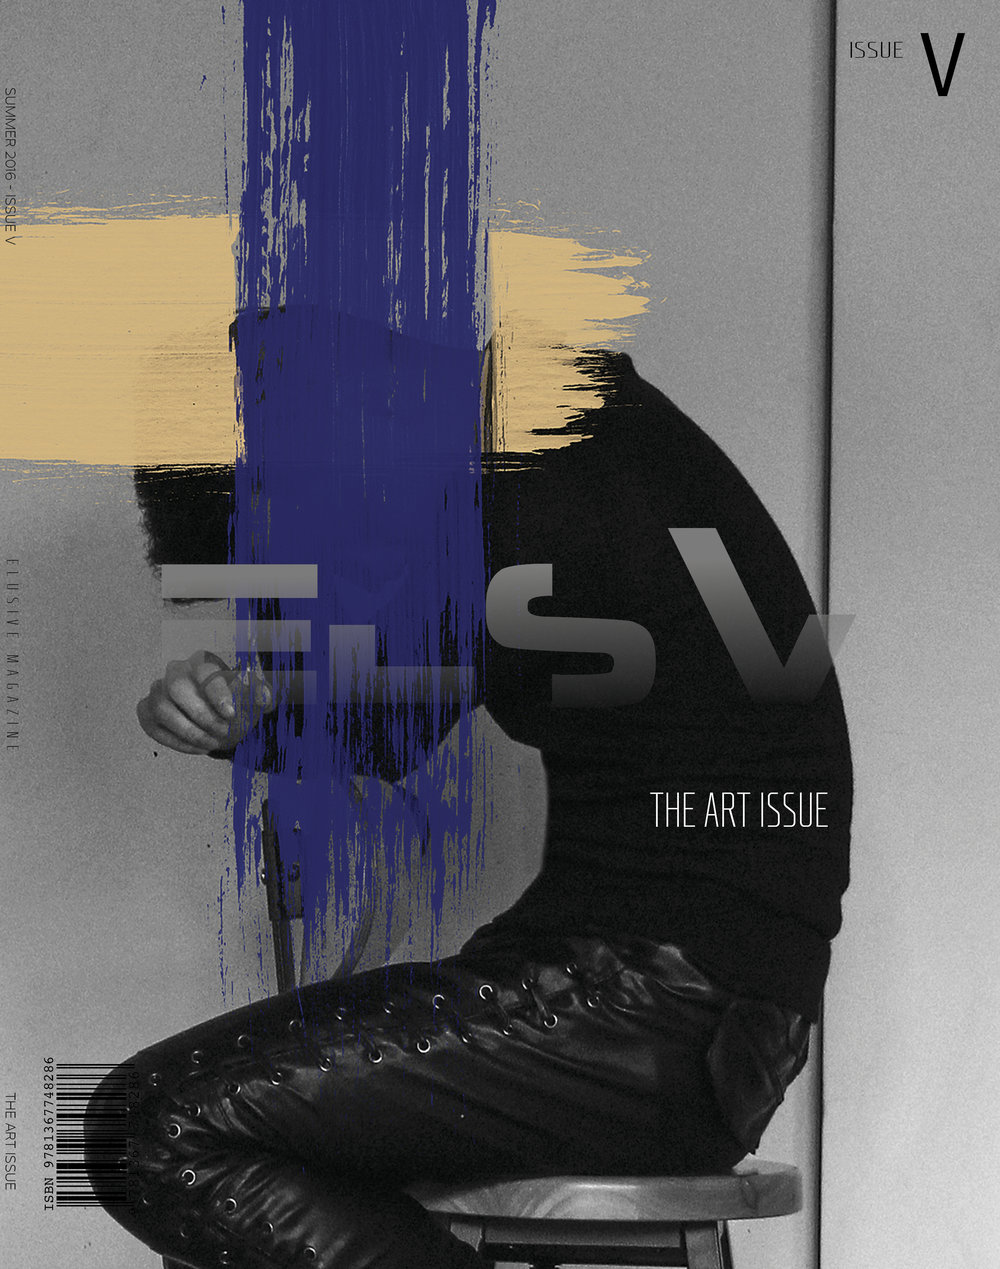 Issue V - The Art Issue - featuring matthew chu